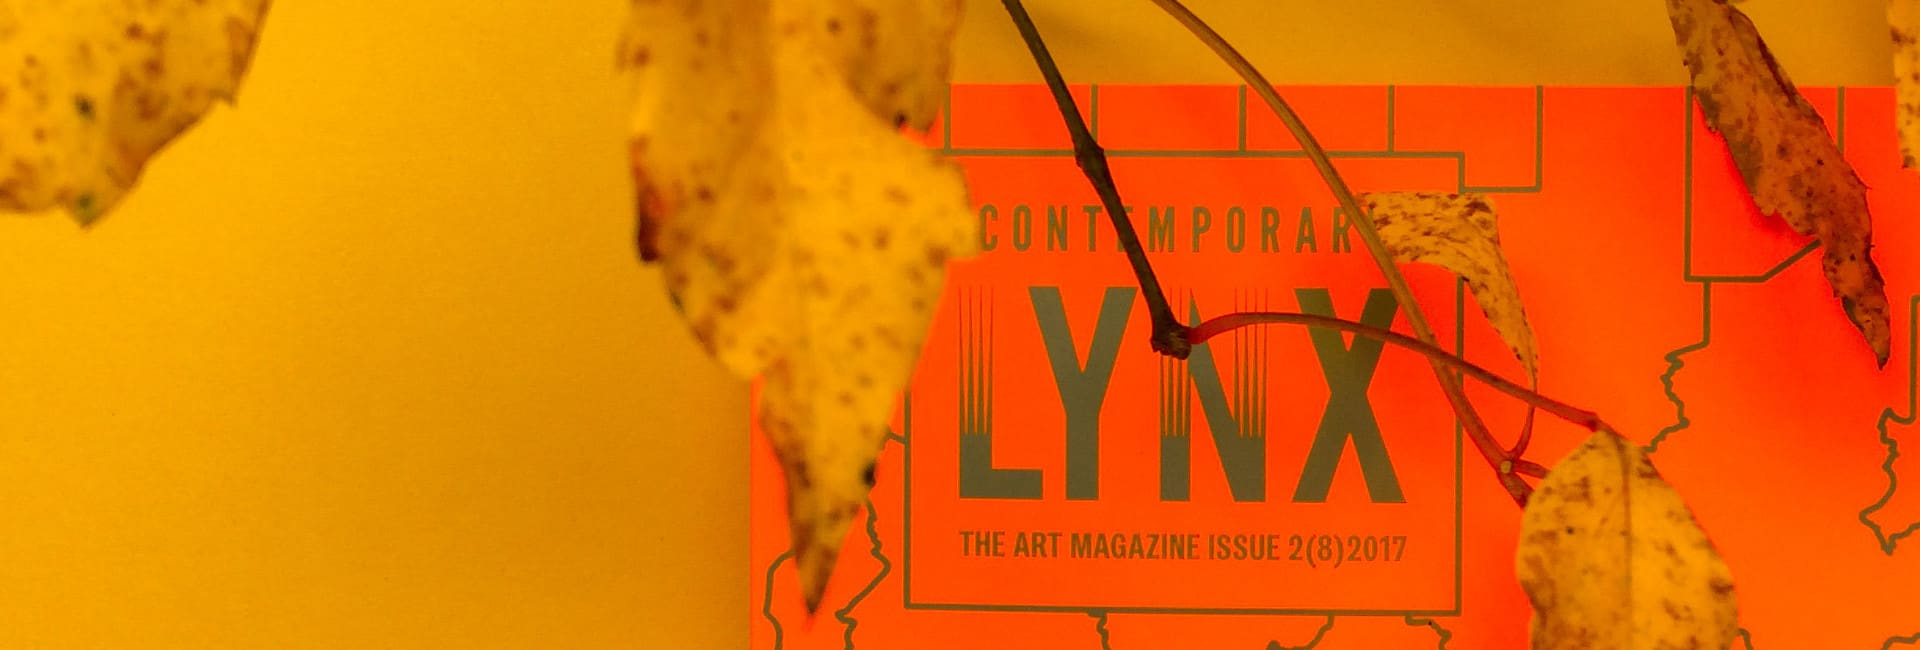 Contemporary Lynx baner autumn